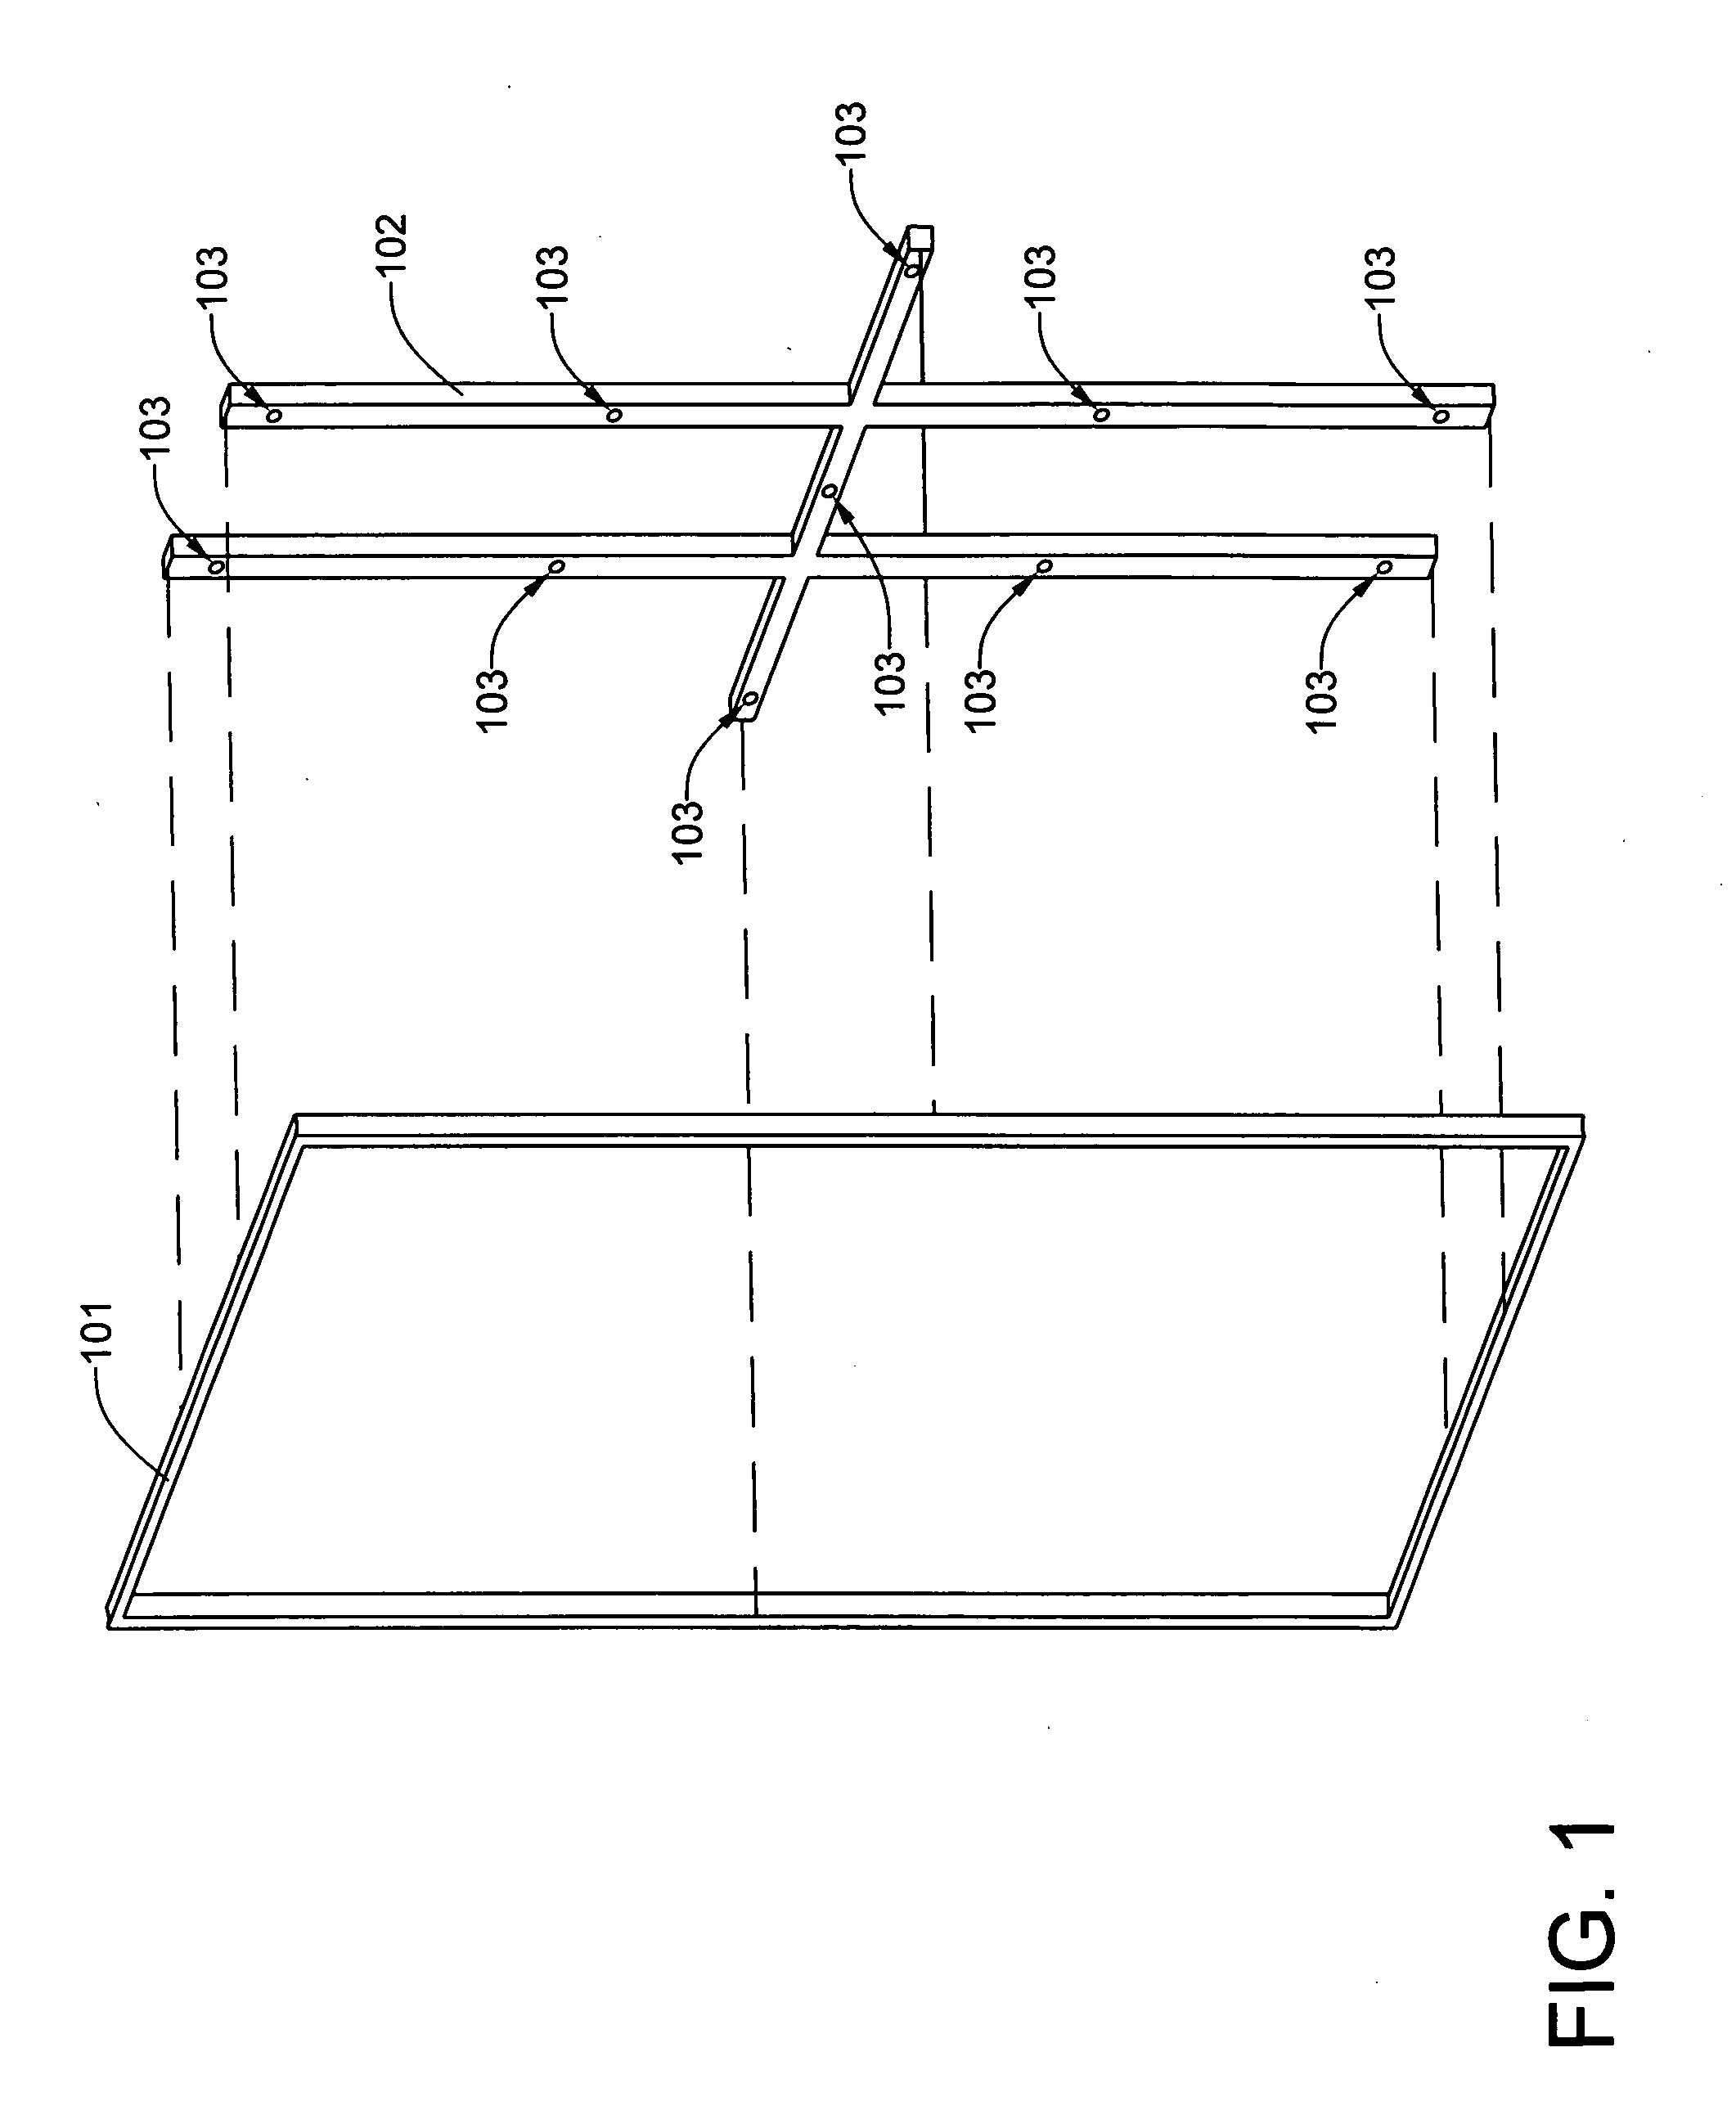 Fake Window Muntins Patent Us20100236167 Divided Light Windows Having Magnetically